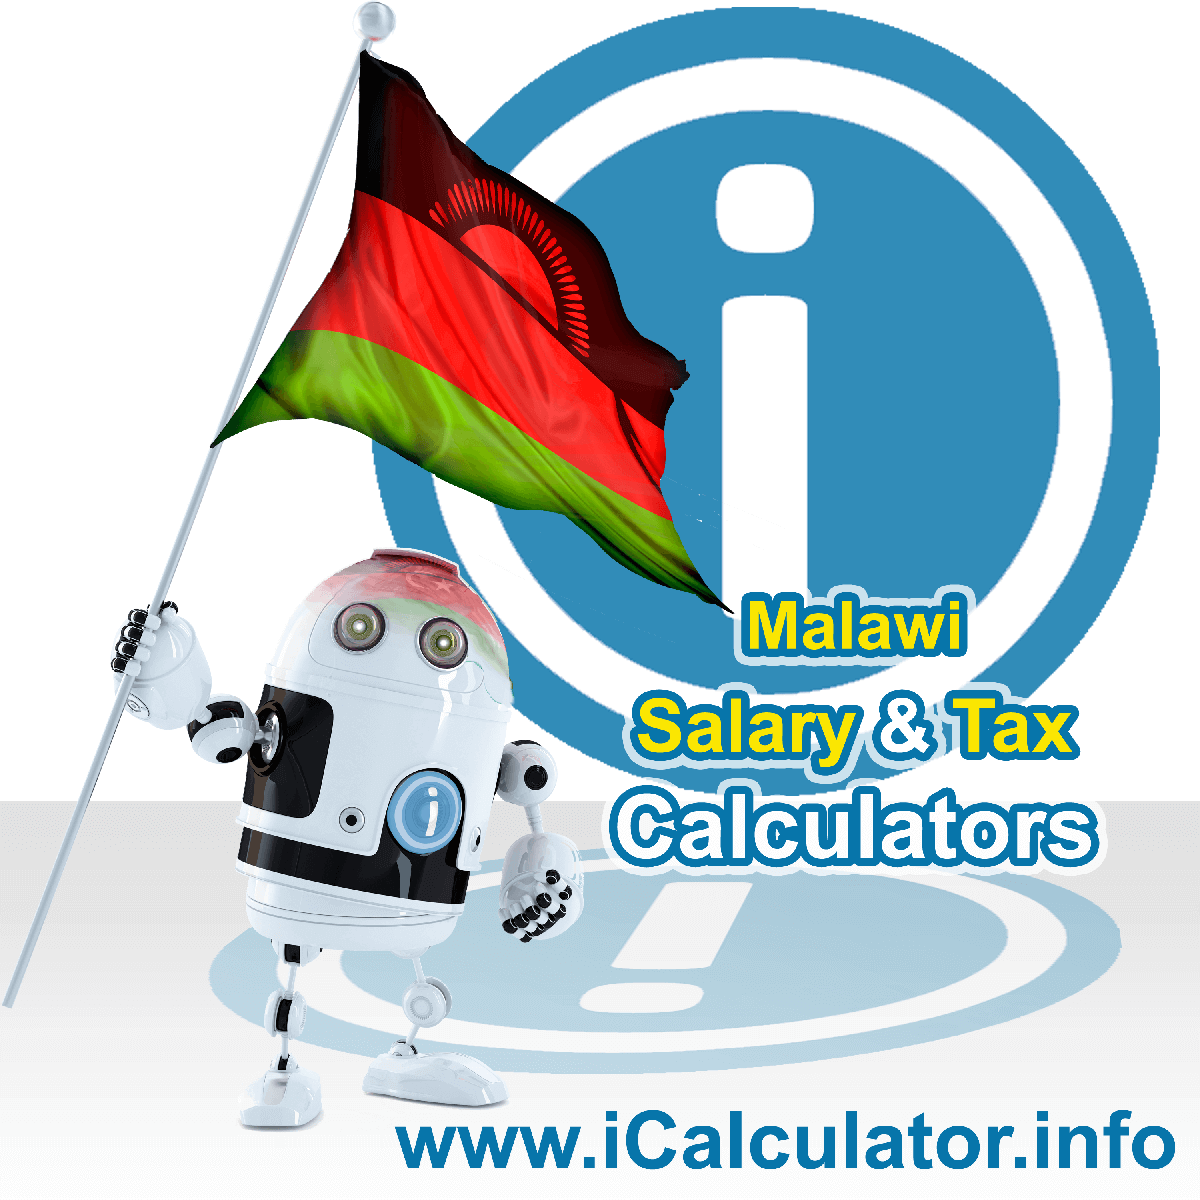 Malawi Salary Calculator. This image shows the Malawiese flag and information relating to the tax formula for the Malawi Tax Calculator